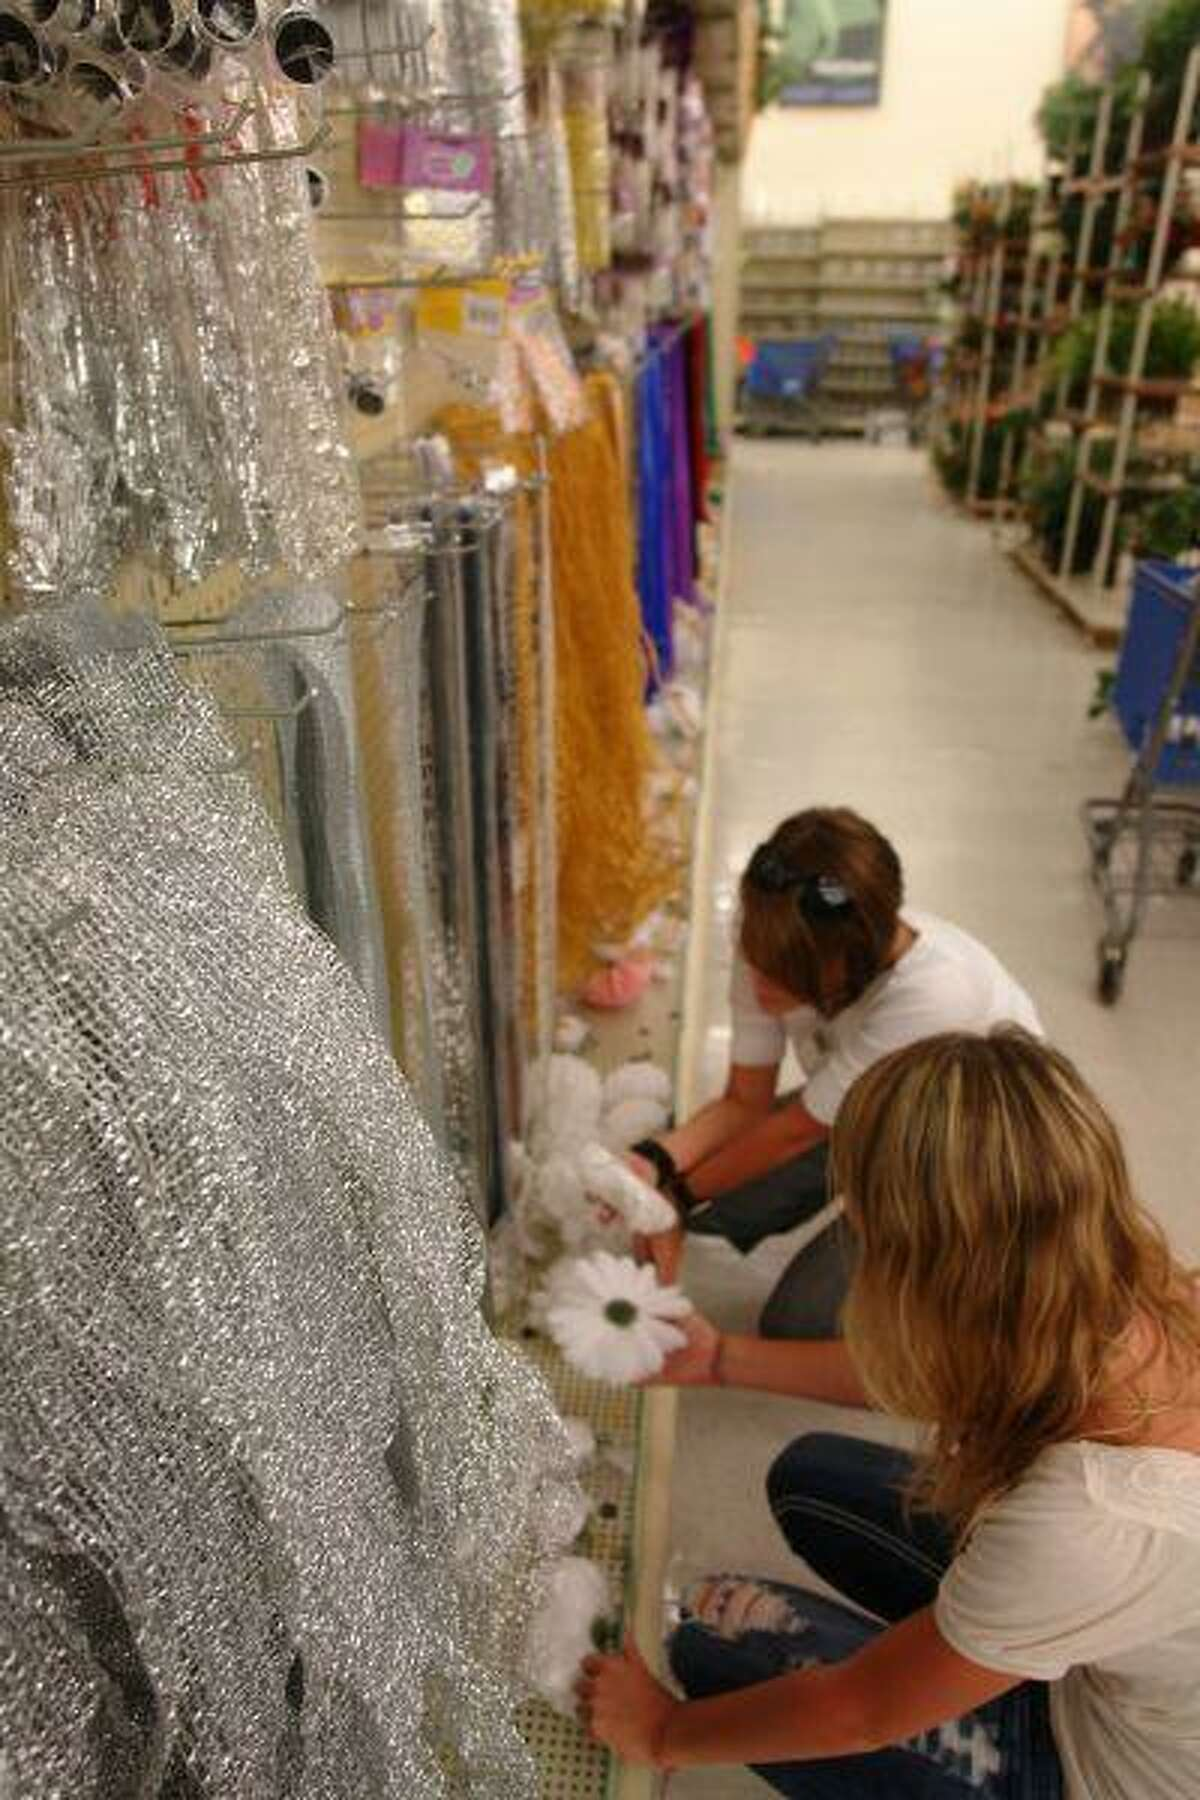 Donna Danes and her daughter Dashley Williams, a Willis High School junior, shop the homecoming aisle at Hobby Lobby looking for the perfect mum flower and trinkets for a homemade mum.